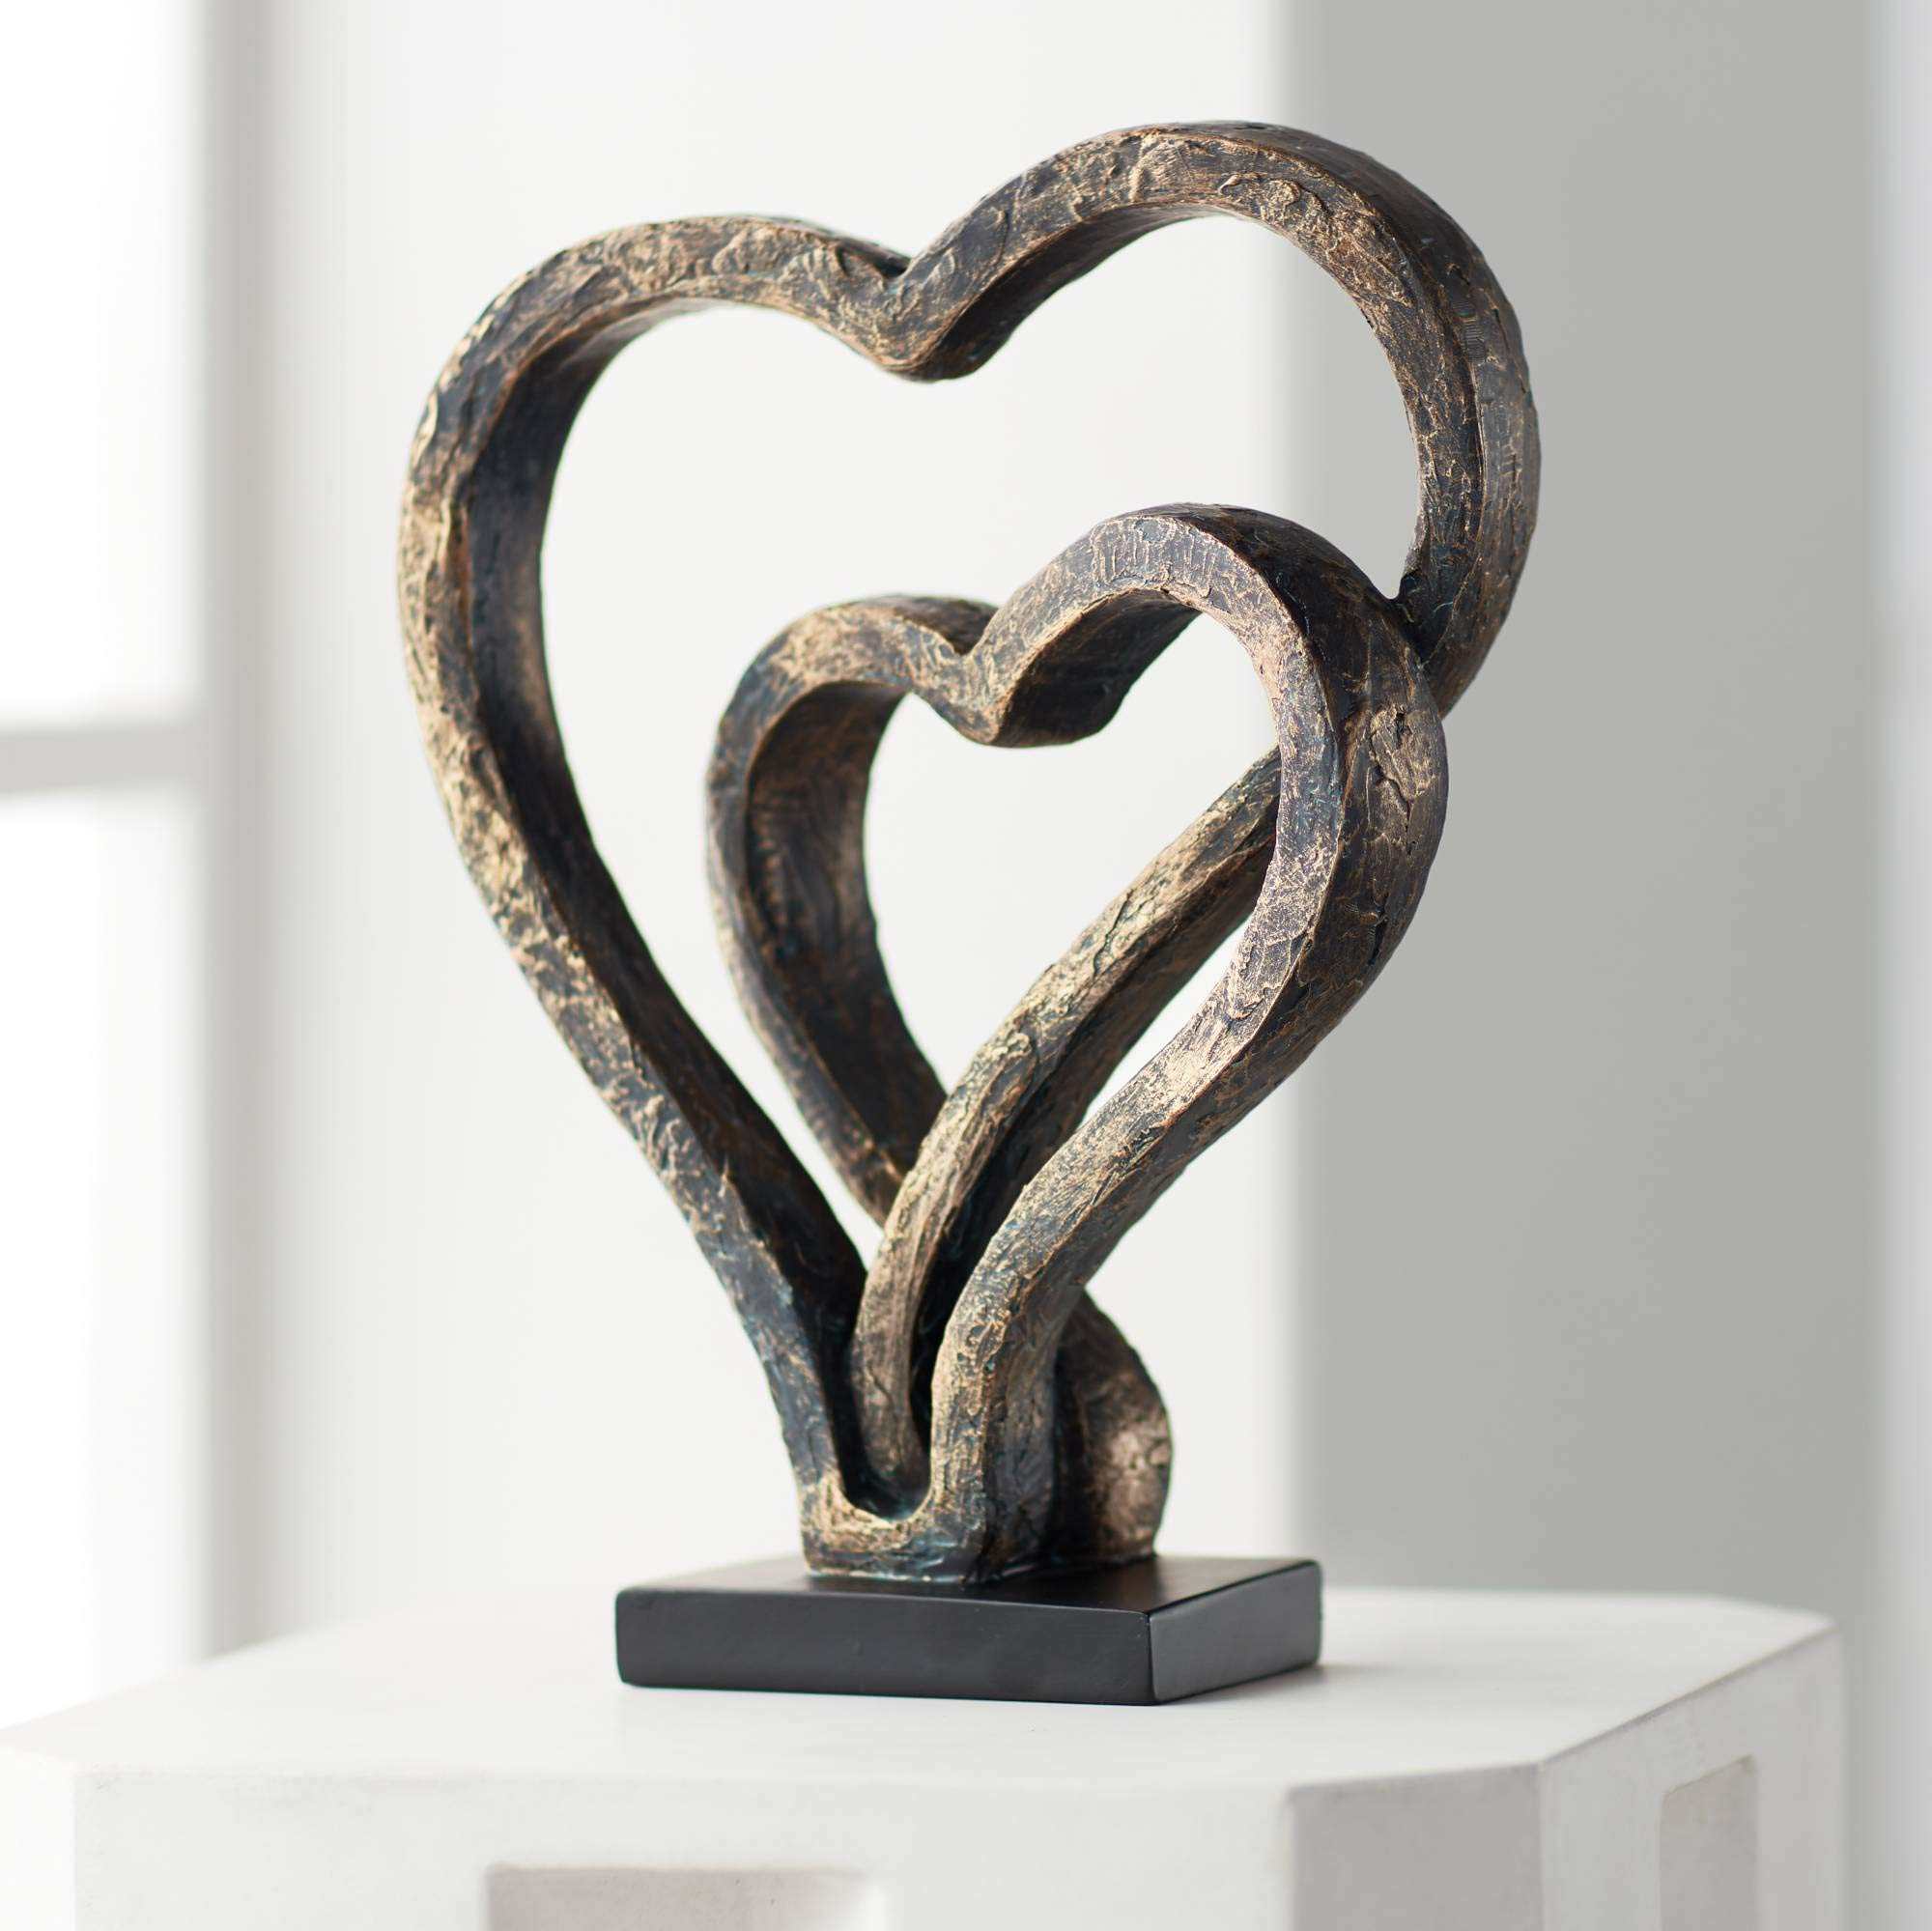 Kensington Hill Interlocking Hearts 11 3/4'' High Bronze Sculpture by Kensington Hill